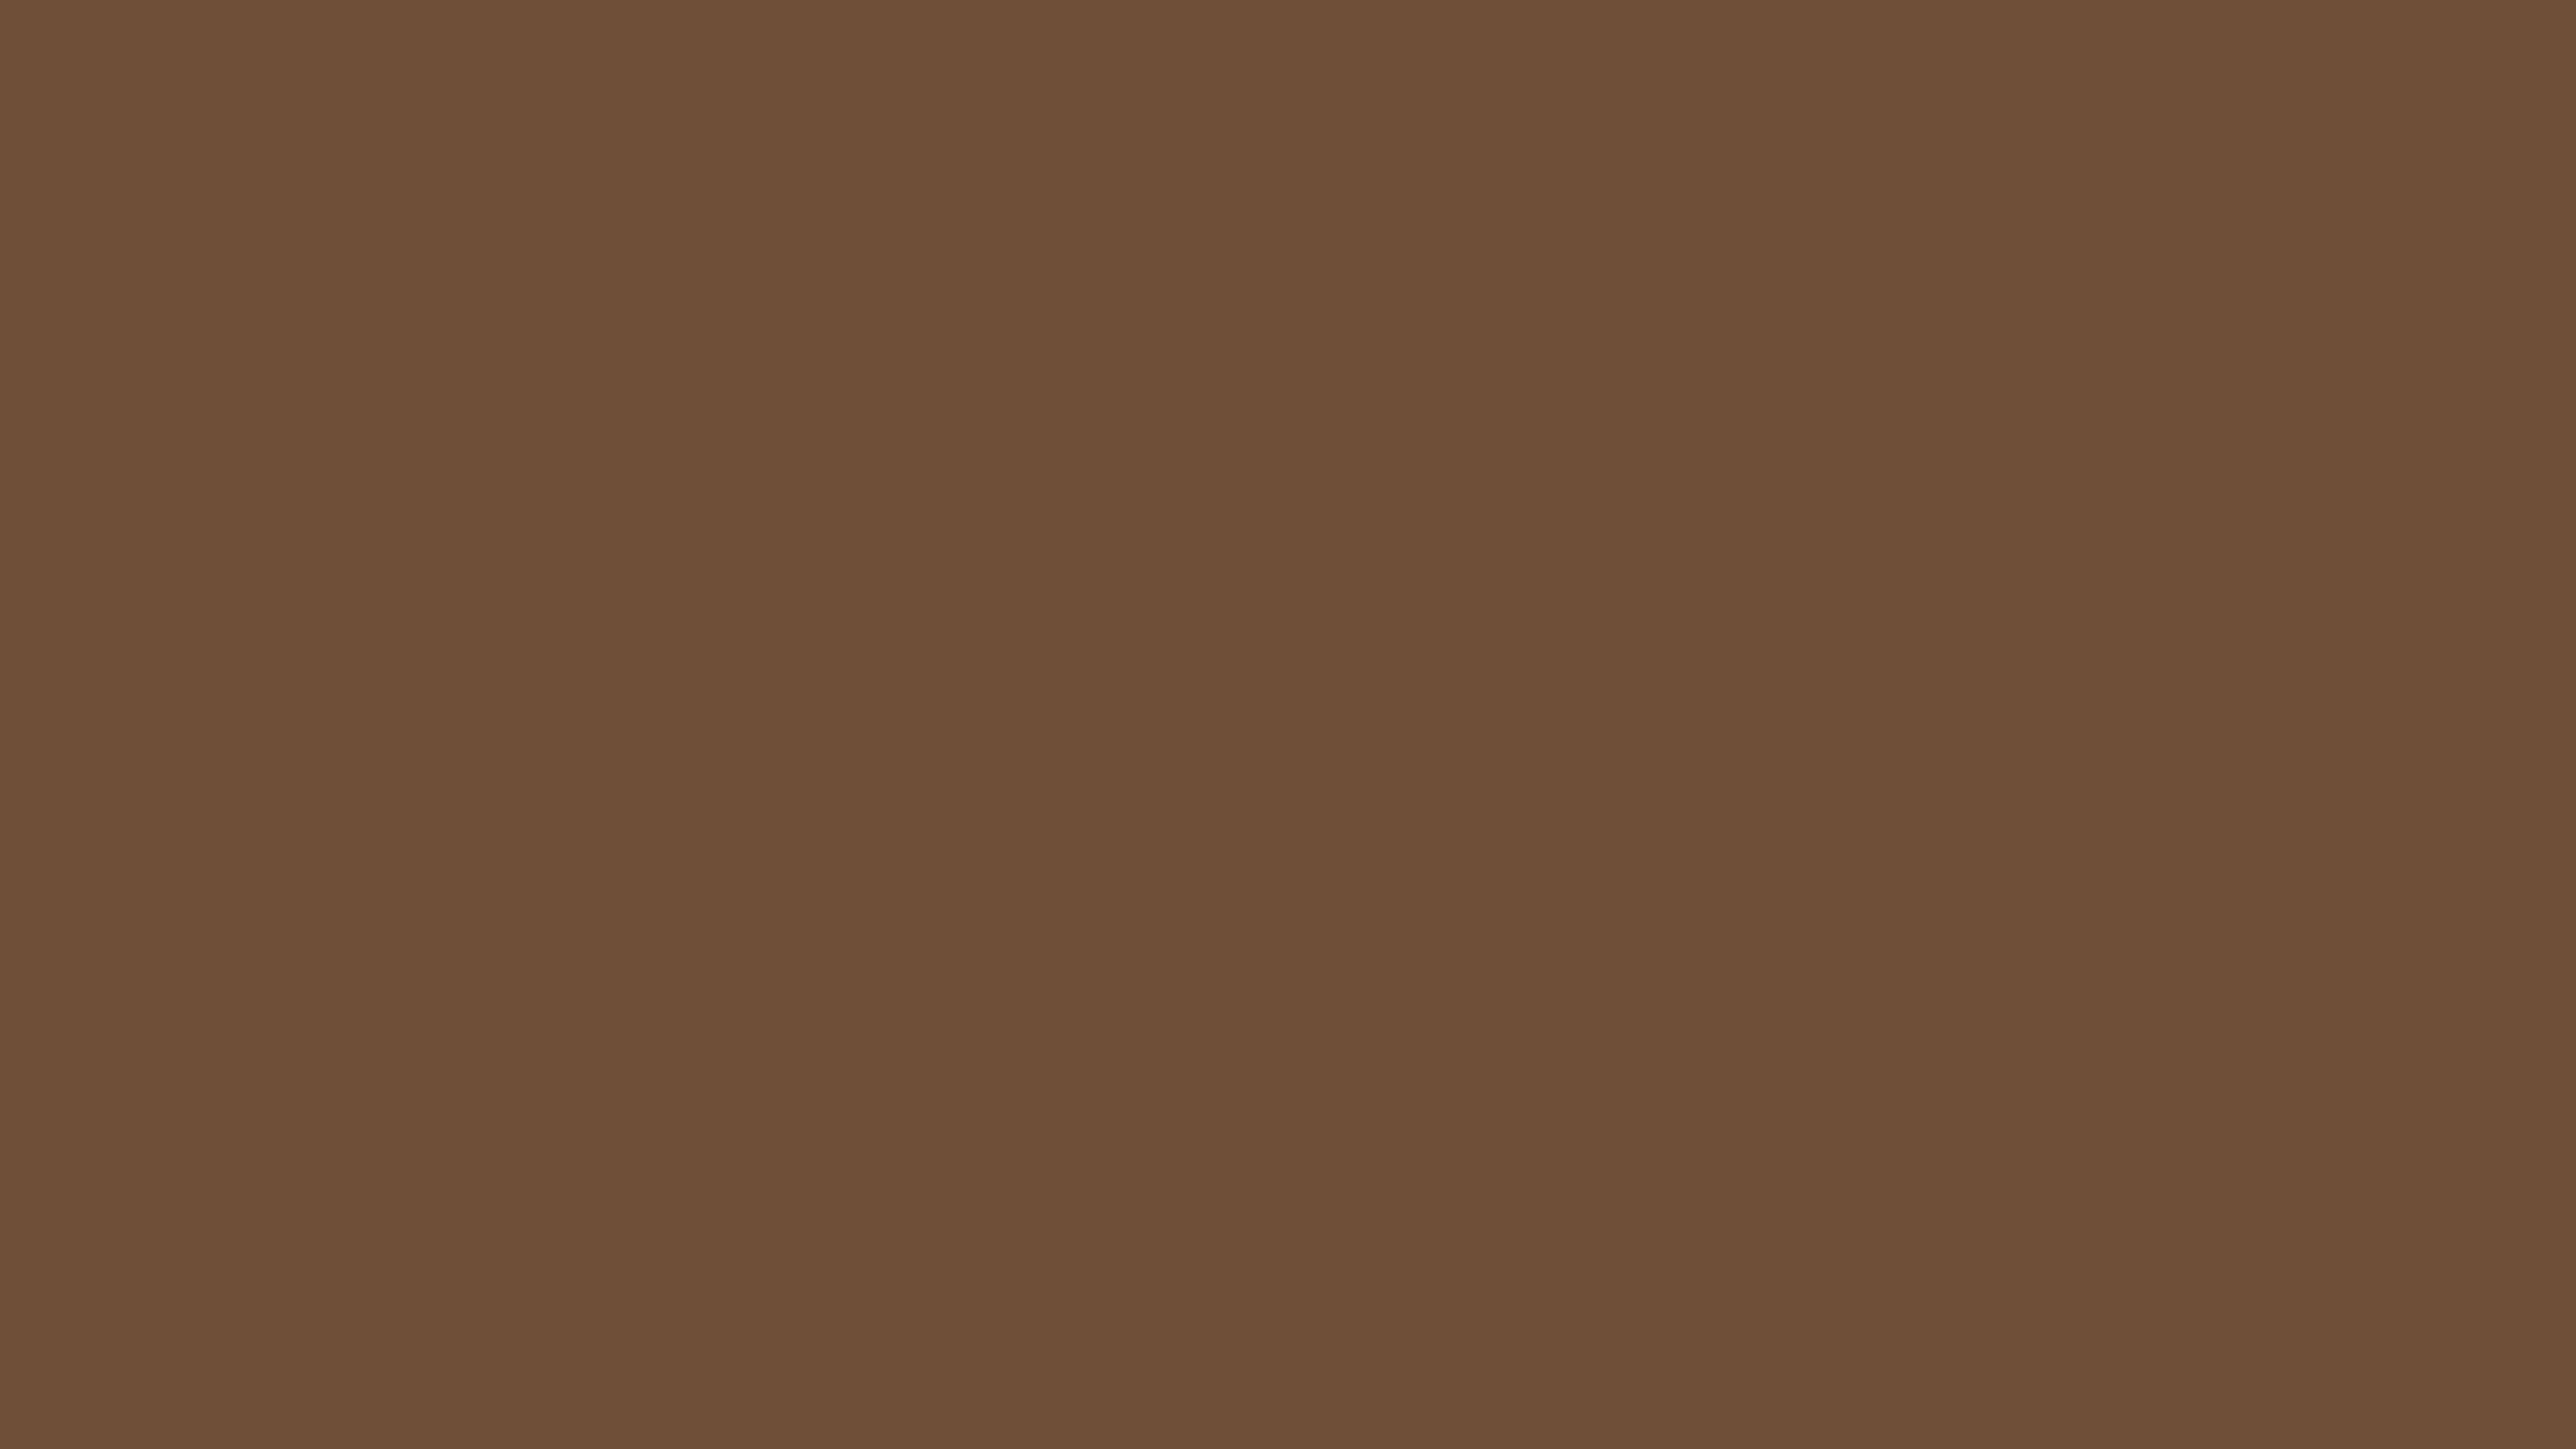 4096x2304 Tuscan Brown Solid Color Background